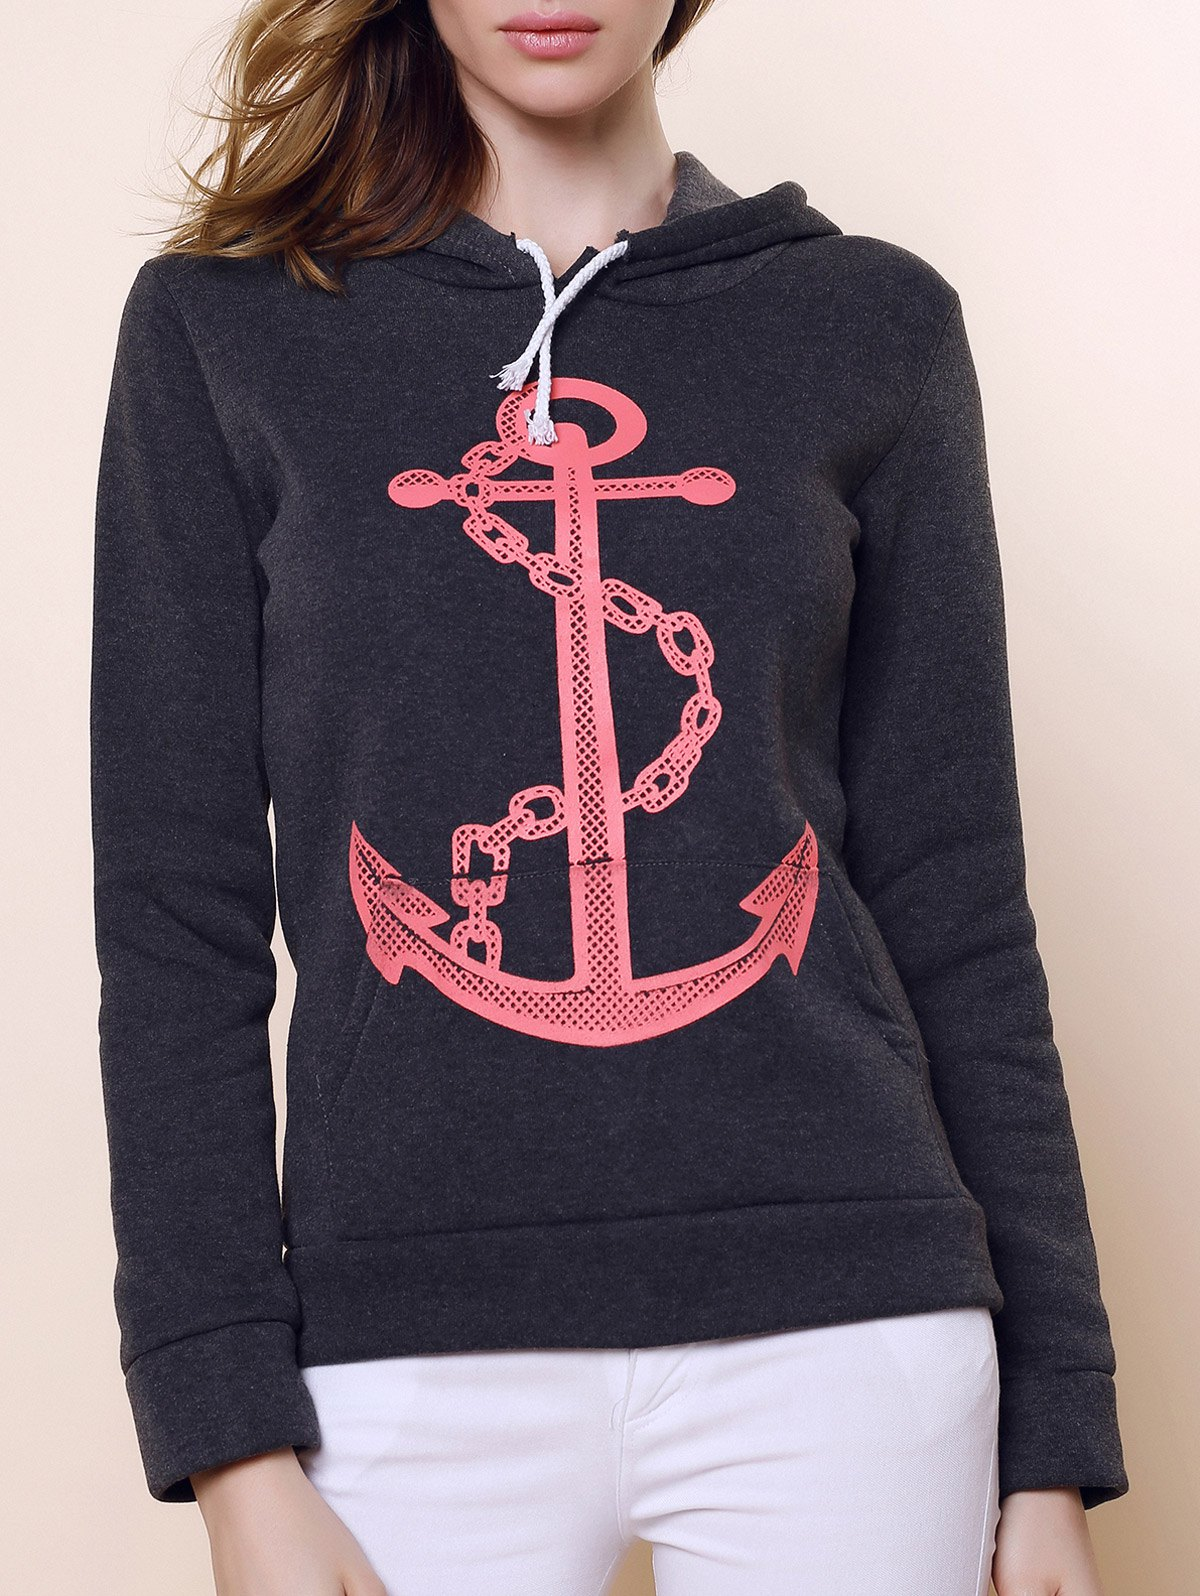 Casual Anchor Print Hooded Long Sleeve Hoodie For Women - BLACK GREY XL